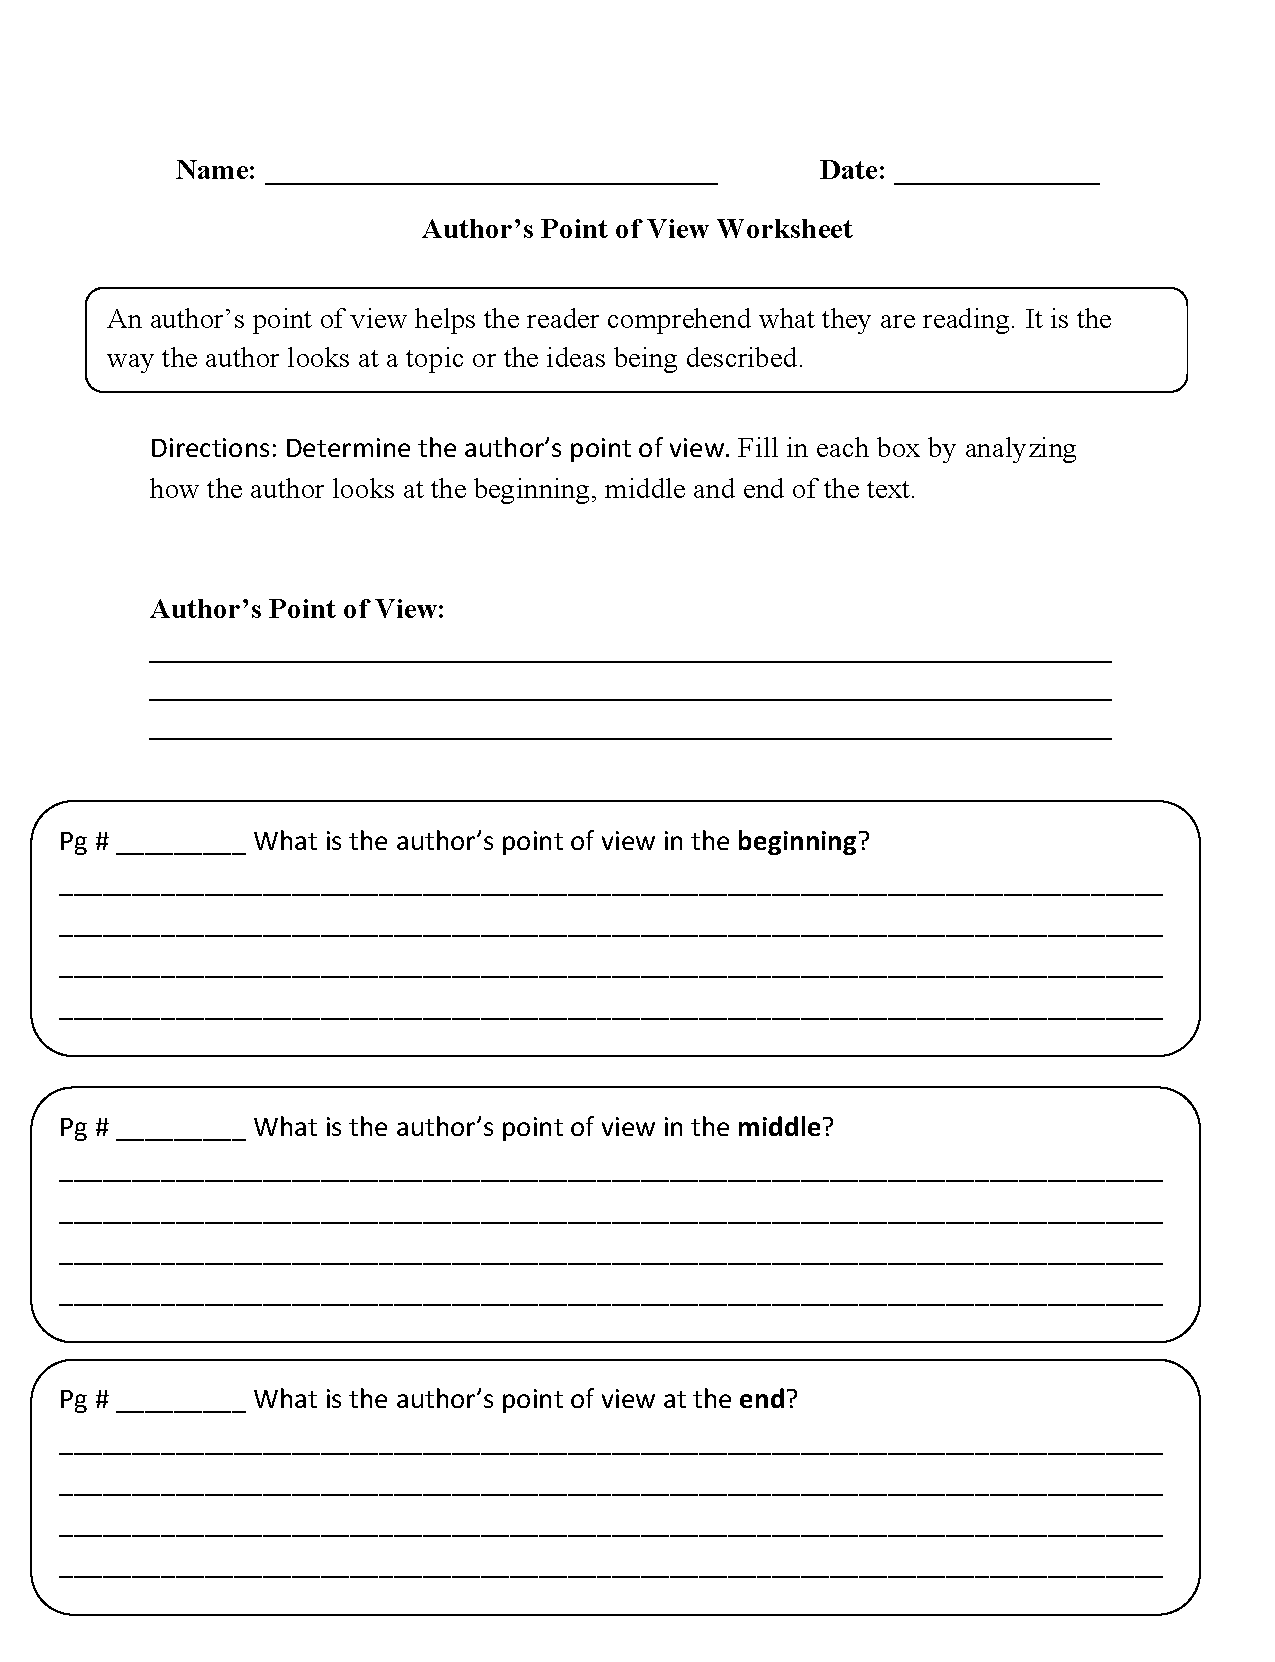 Weirdmailus  Remarkable Englishlinxcom  Point Of View Worksheets With Handsome Point Of View Worksheets With Agreeable Lightning Thief Worksheets Also Math Addition Worksheets Printable In Addition Complete Budget Worksheet And Free Two Digit Multiplication Worksheets As Well As Nd Grade Reading Worksheets Printable Additionally What Is An Adjective Worksheet From Englishlinxcom With Weirdmailus  Handsome Englishlinxcom  Point Of View Worksheets With Agreeable Point Of View Worksheets And Remarkable Lightning Thief Worksheets Also Math Addition Worksheets Printable In Addition Complete Budget Worksheet From Englishlinxcom